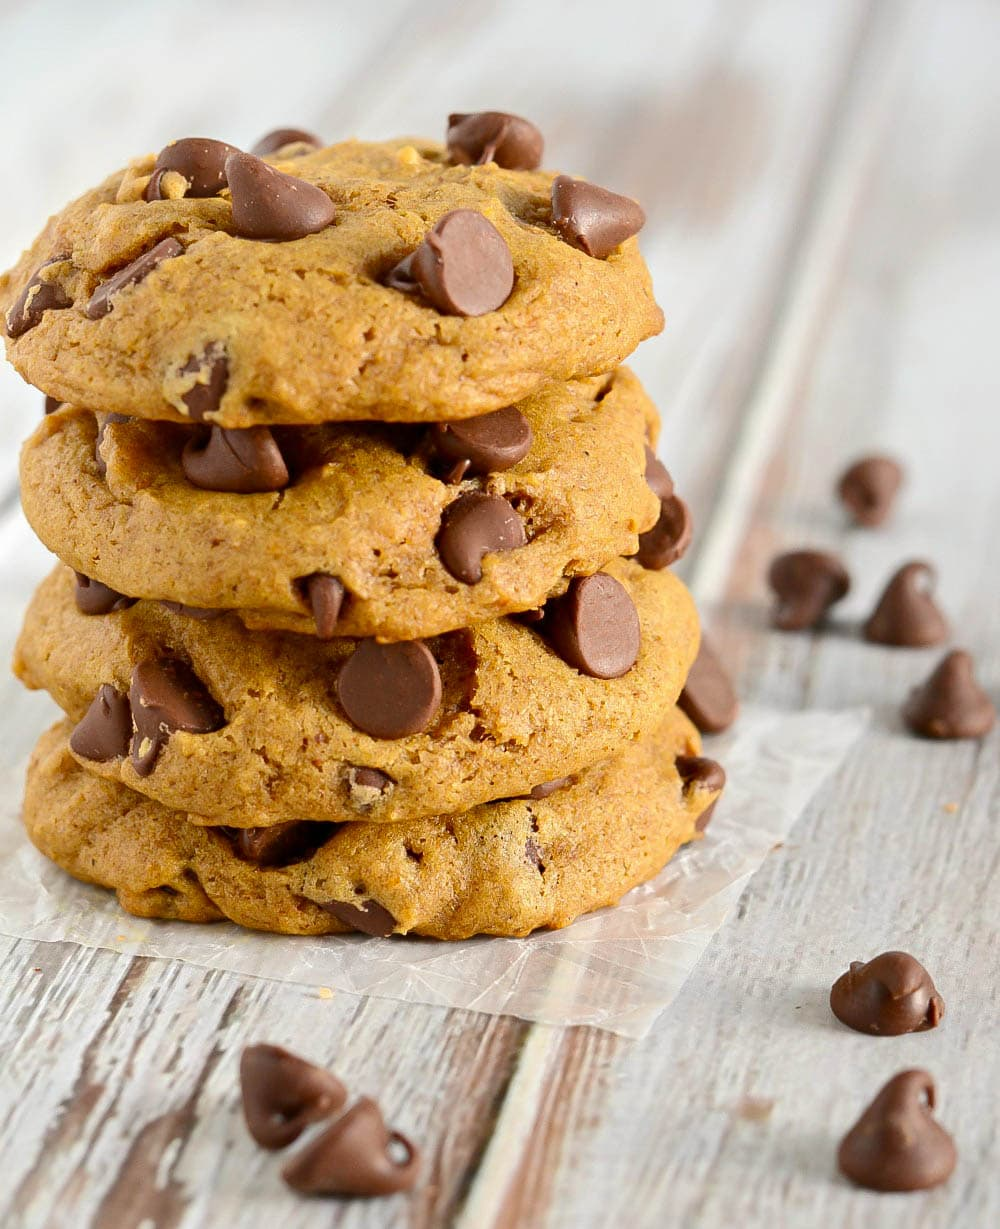 These soft Pumpkin Chocolate Chip Cookies have just the right amount of spice. A perfect fall cookie recipe!